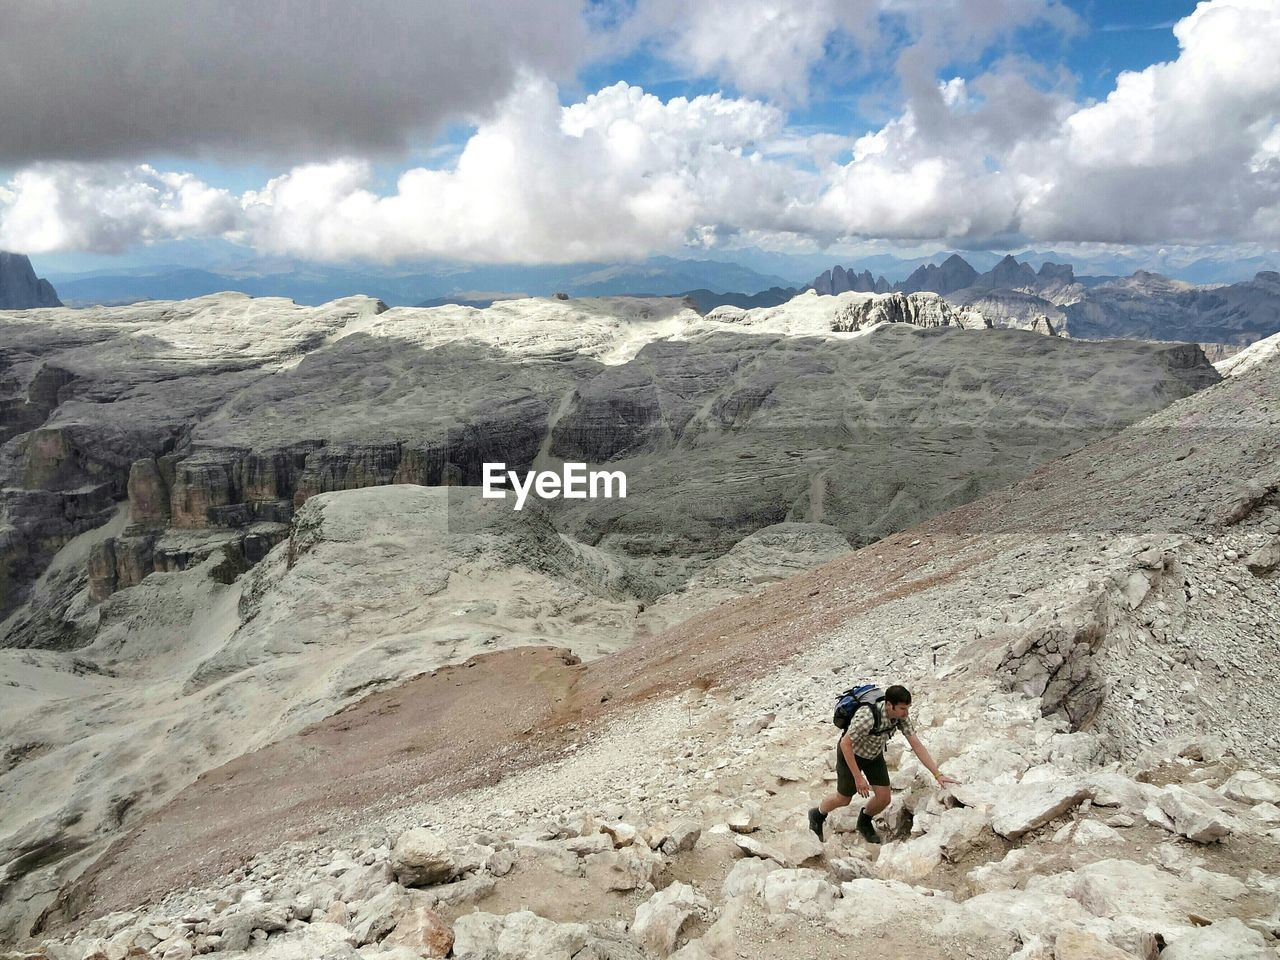 High angle view of man hiking on mountains against cloudy sky